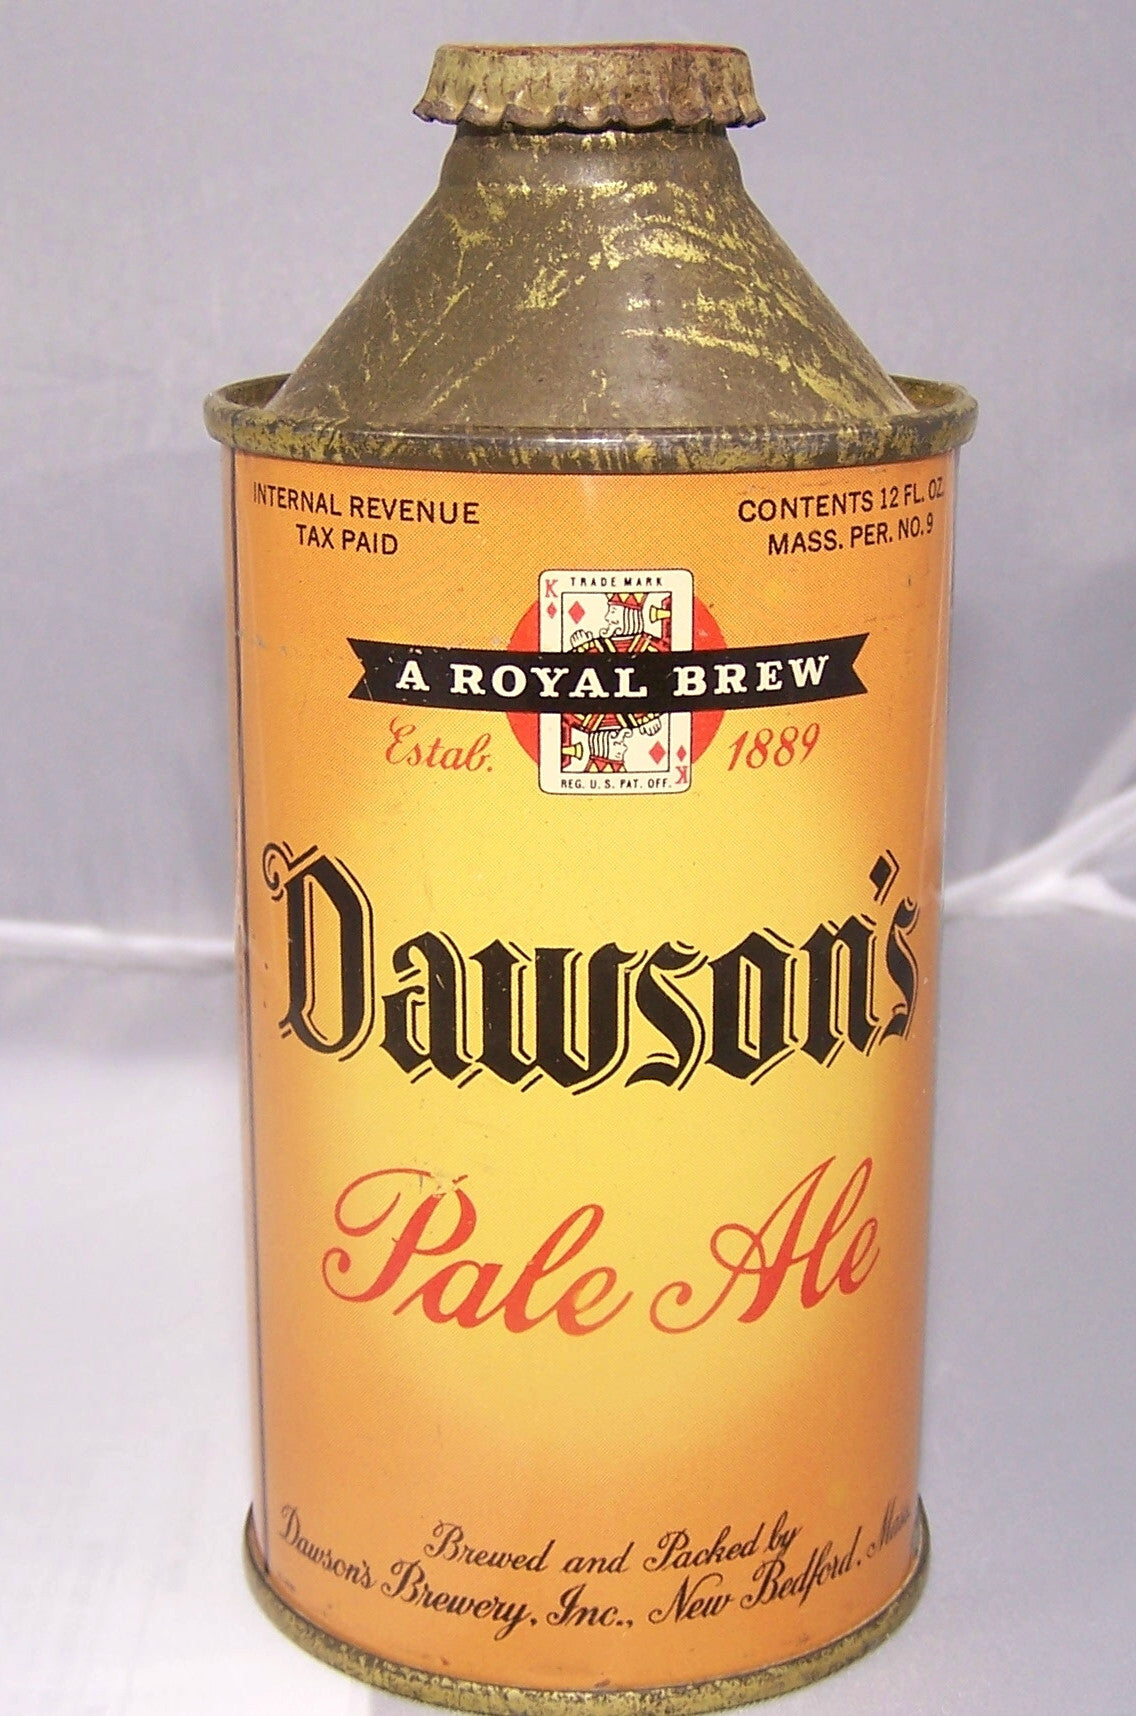 Dawson's Pale Ale, USBC 158-30, Grade 1. Sold on 08/05/18